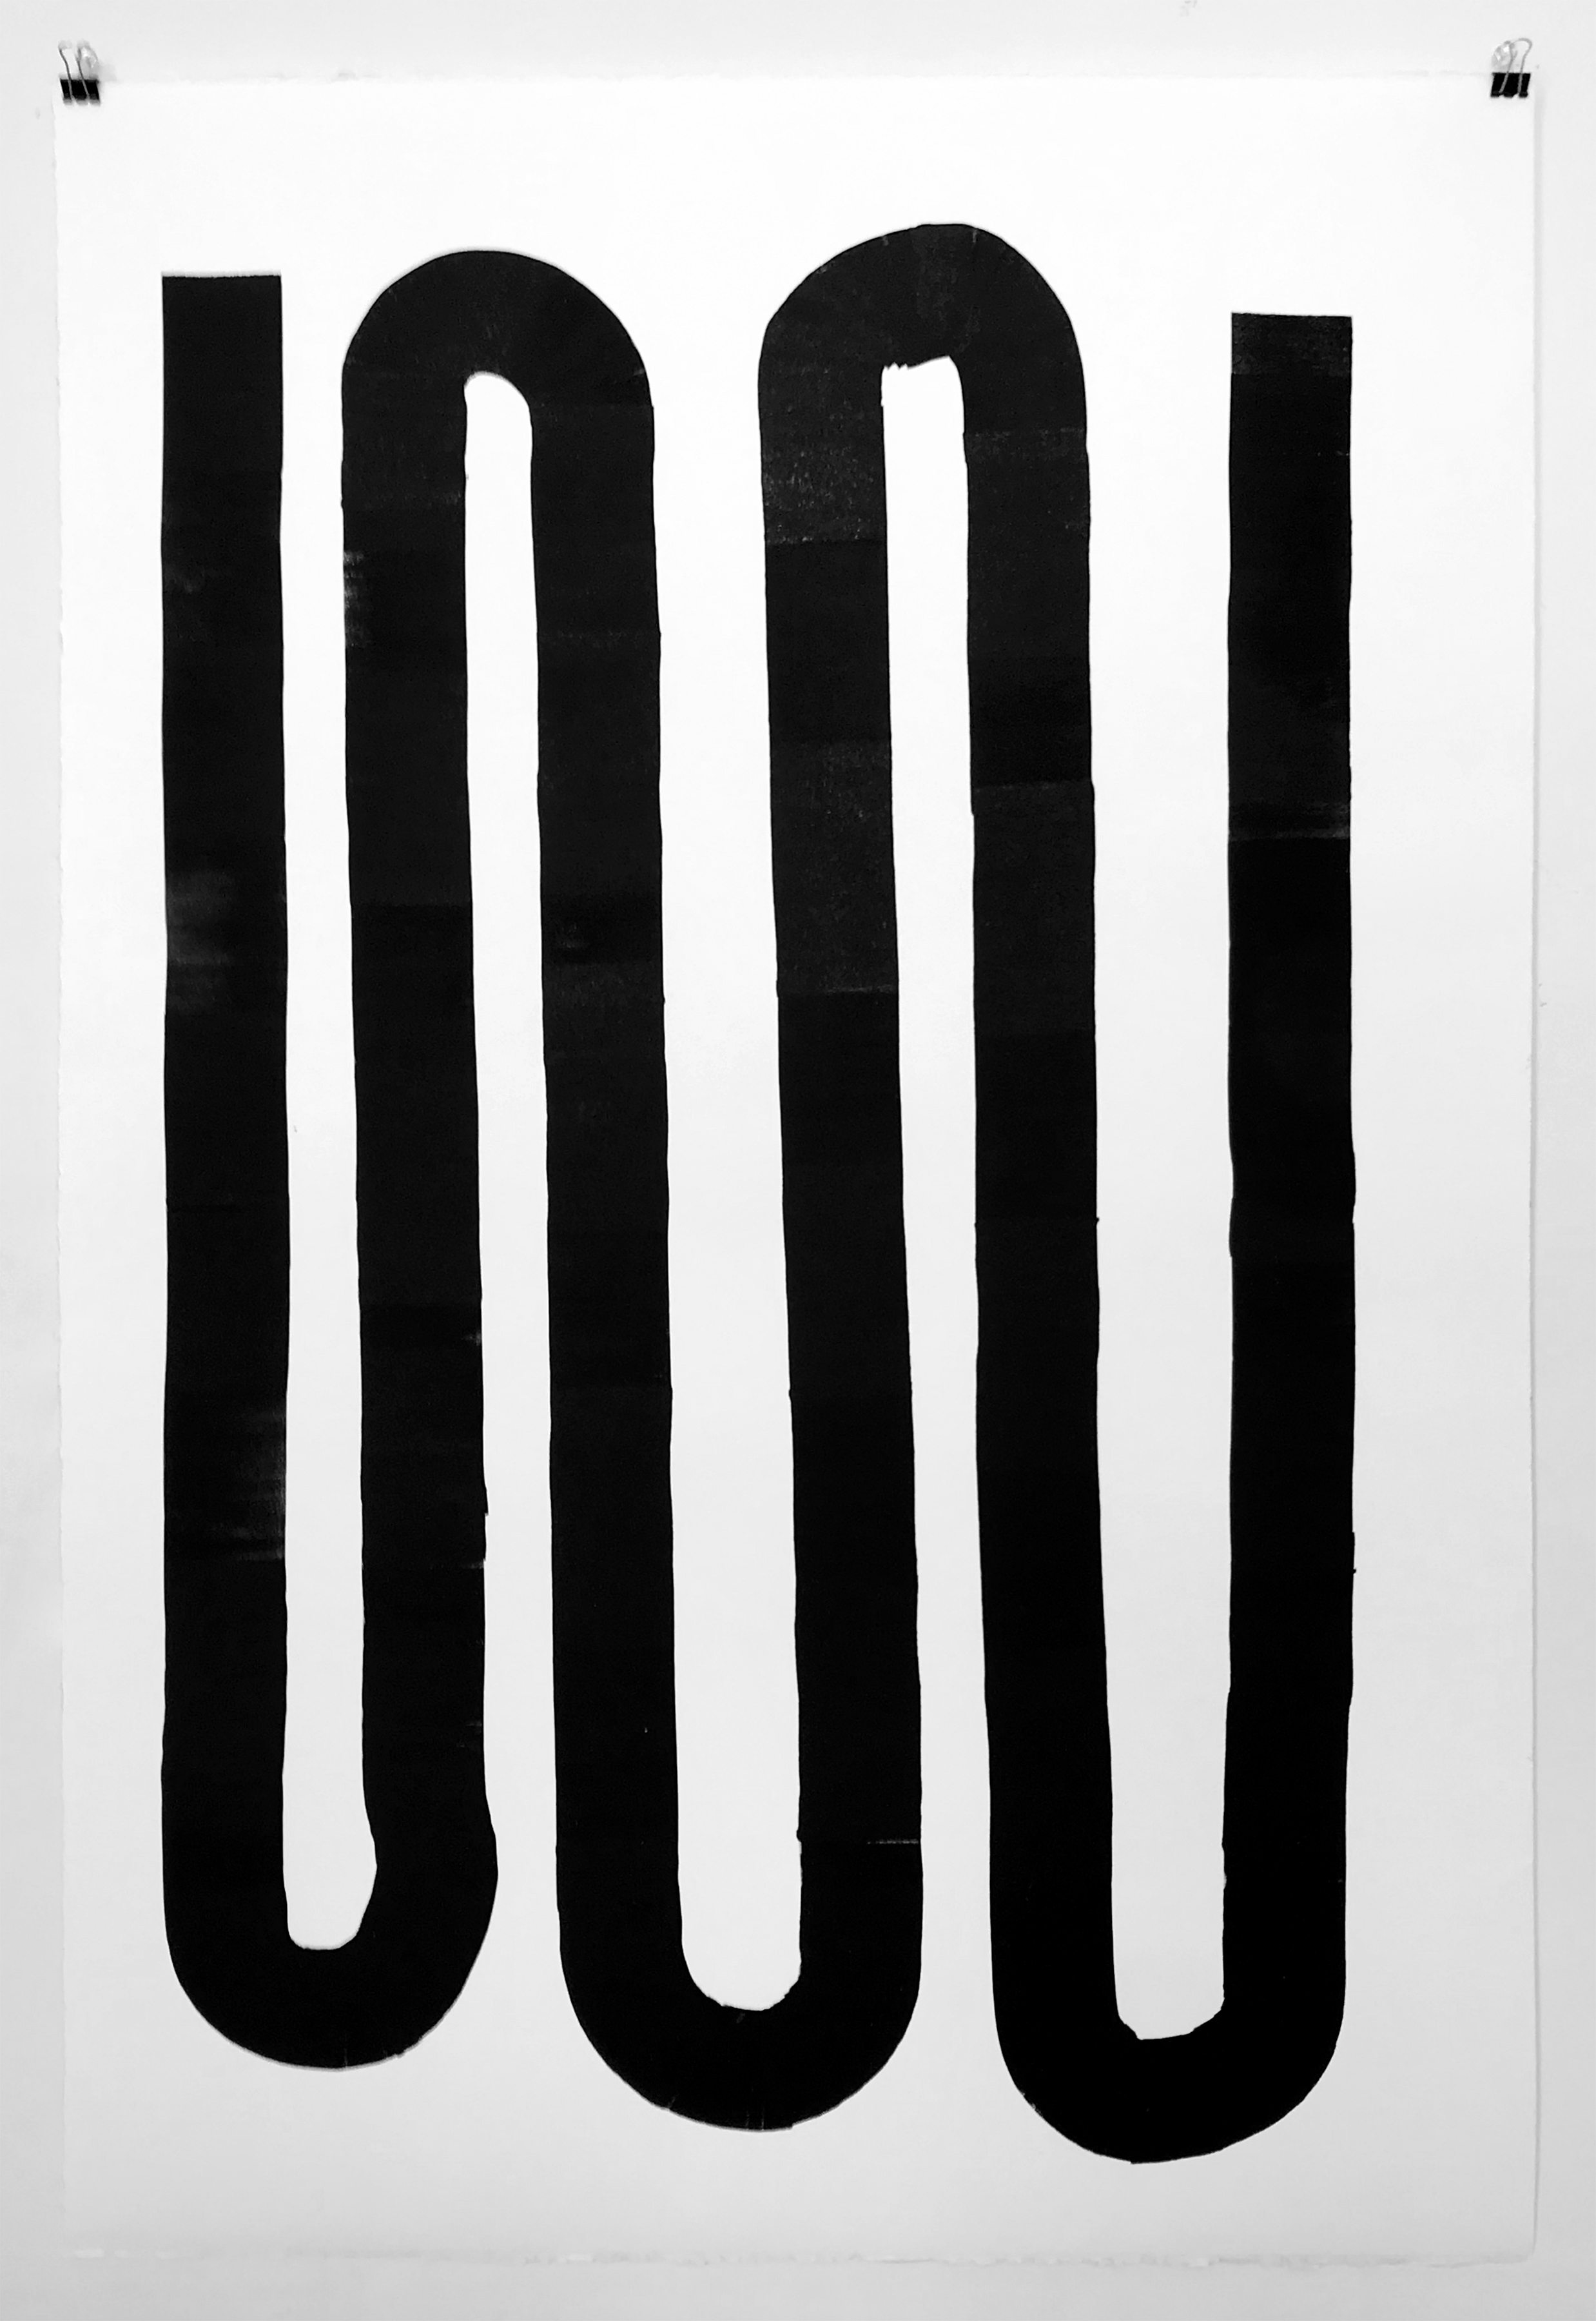 Radiator, 2019, Oil-based ink on paper, 44 x 30 inches